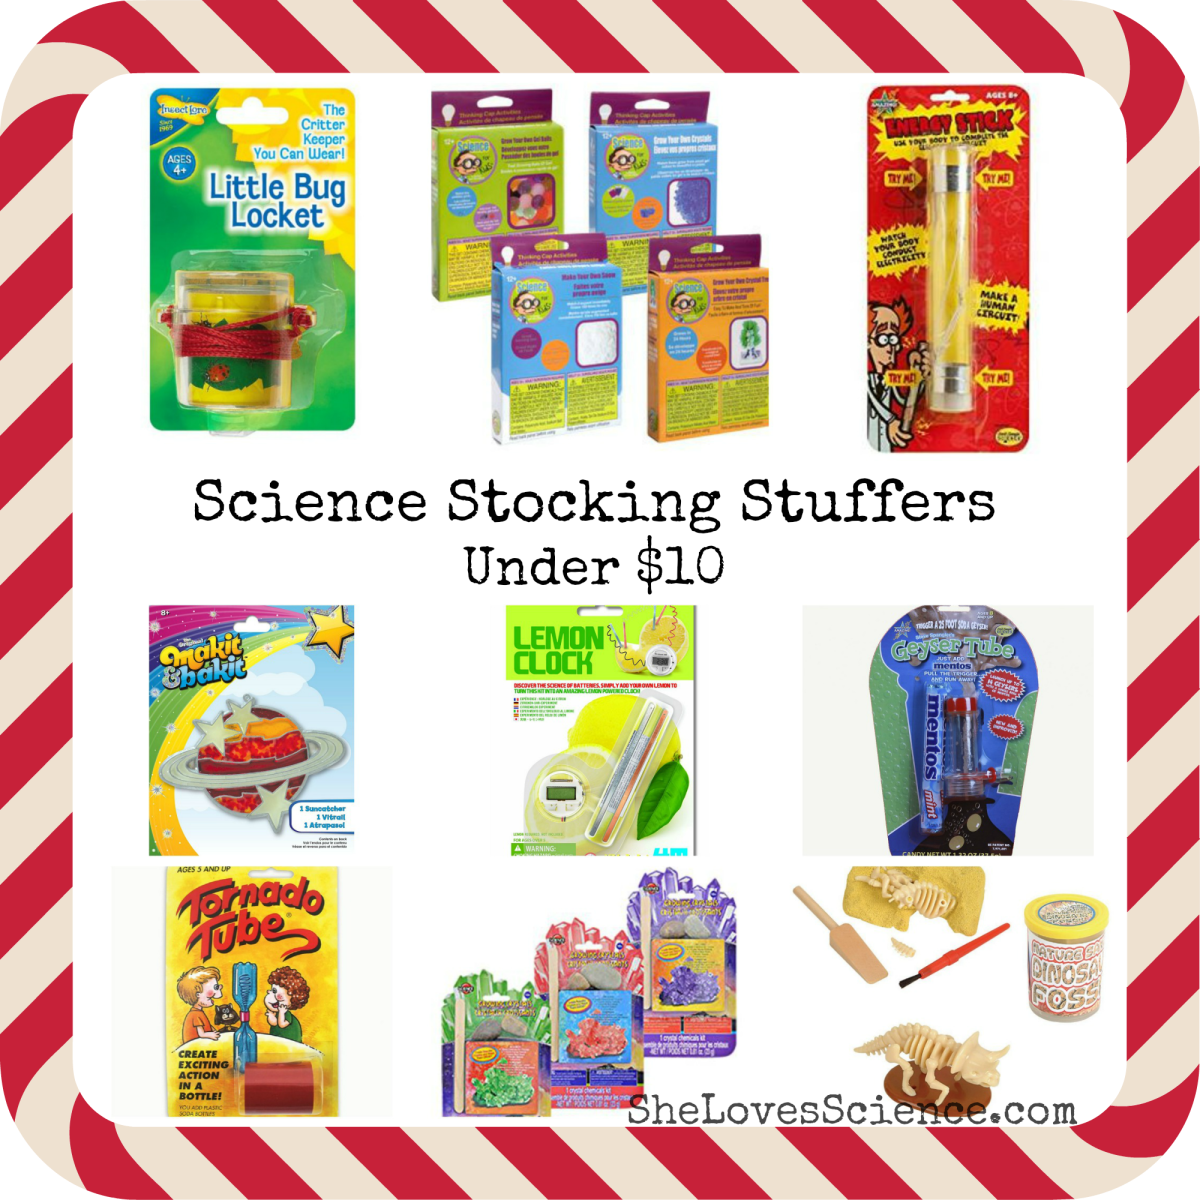 Science Stocking Stuffers Under $10